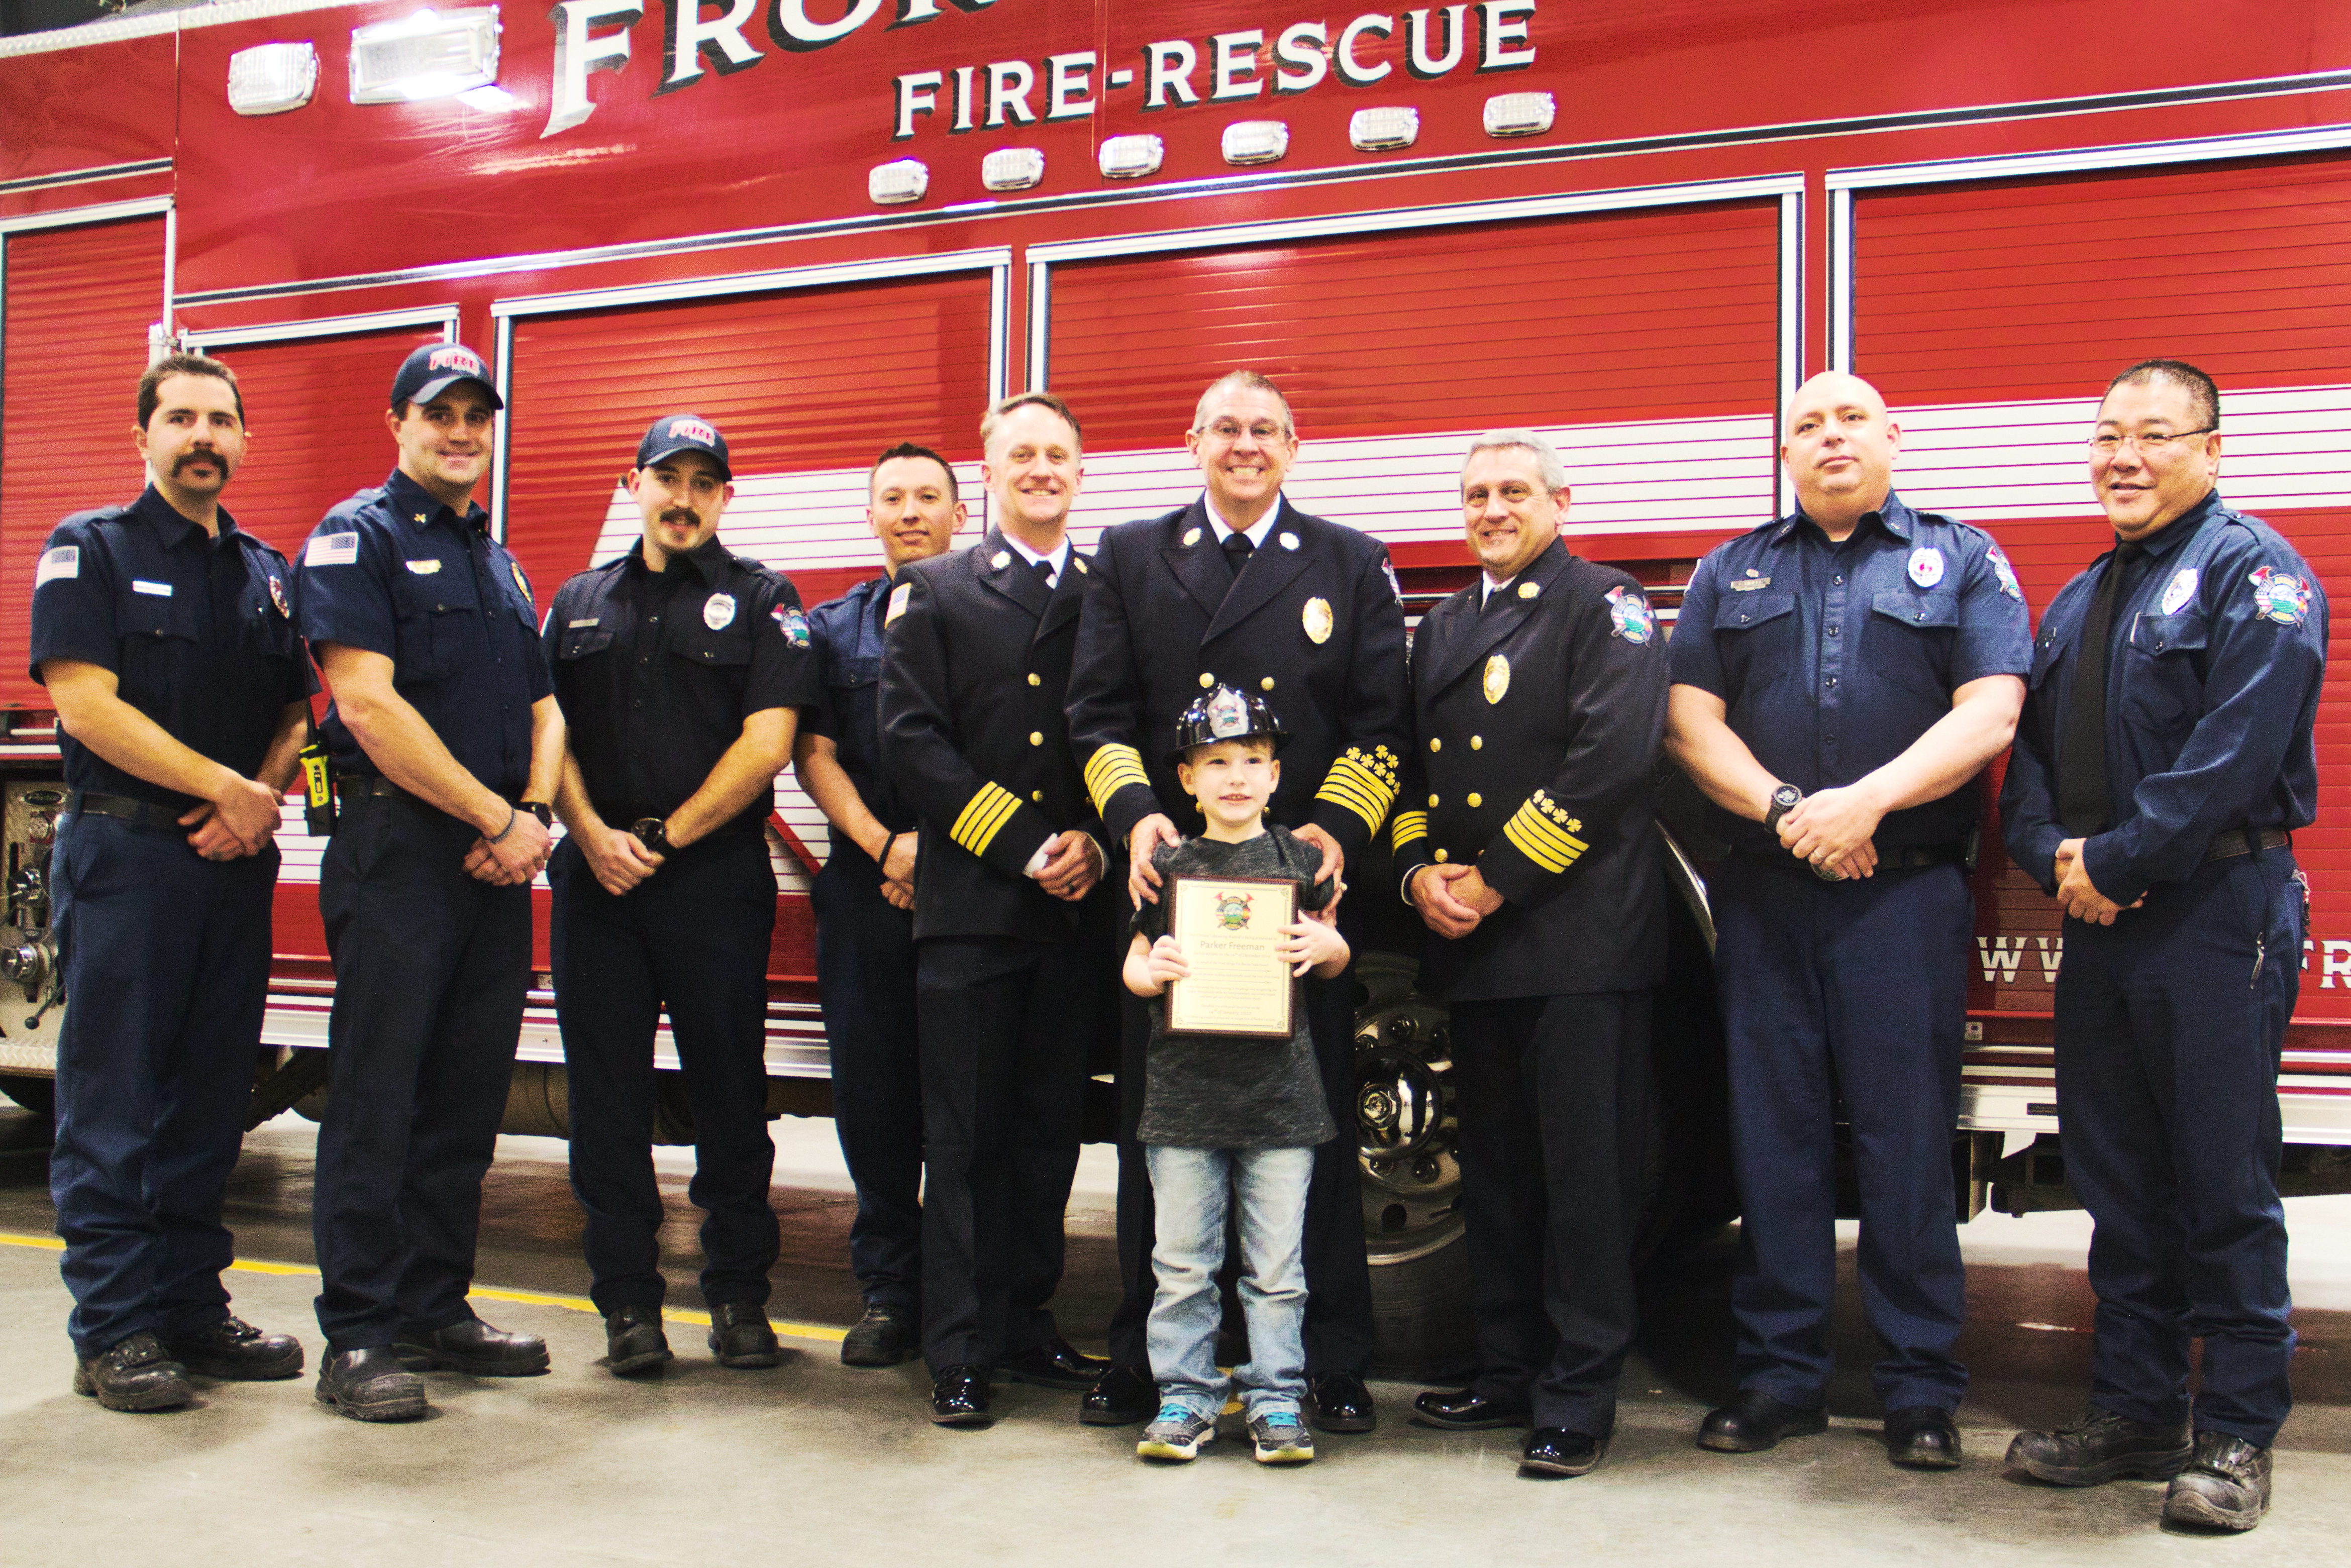 6-year old Parker Freeman receives LIFESAVING Award